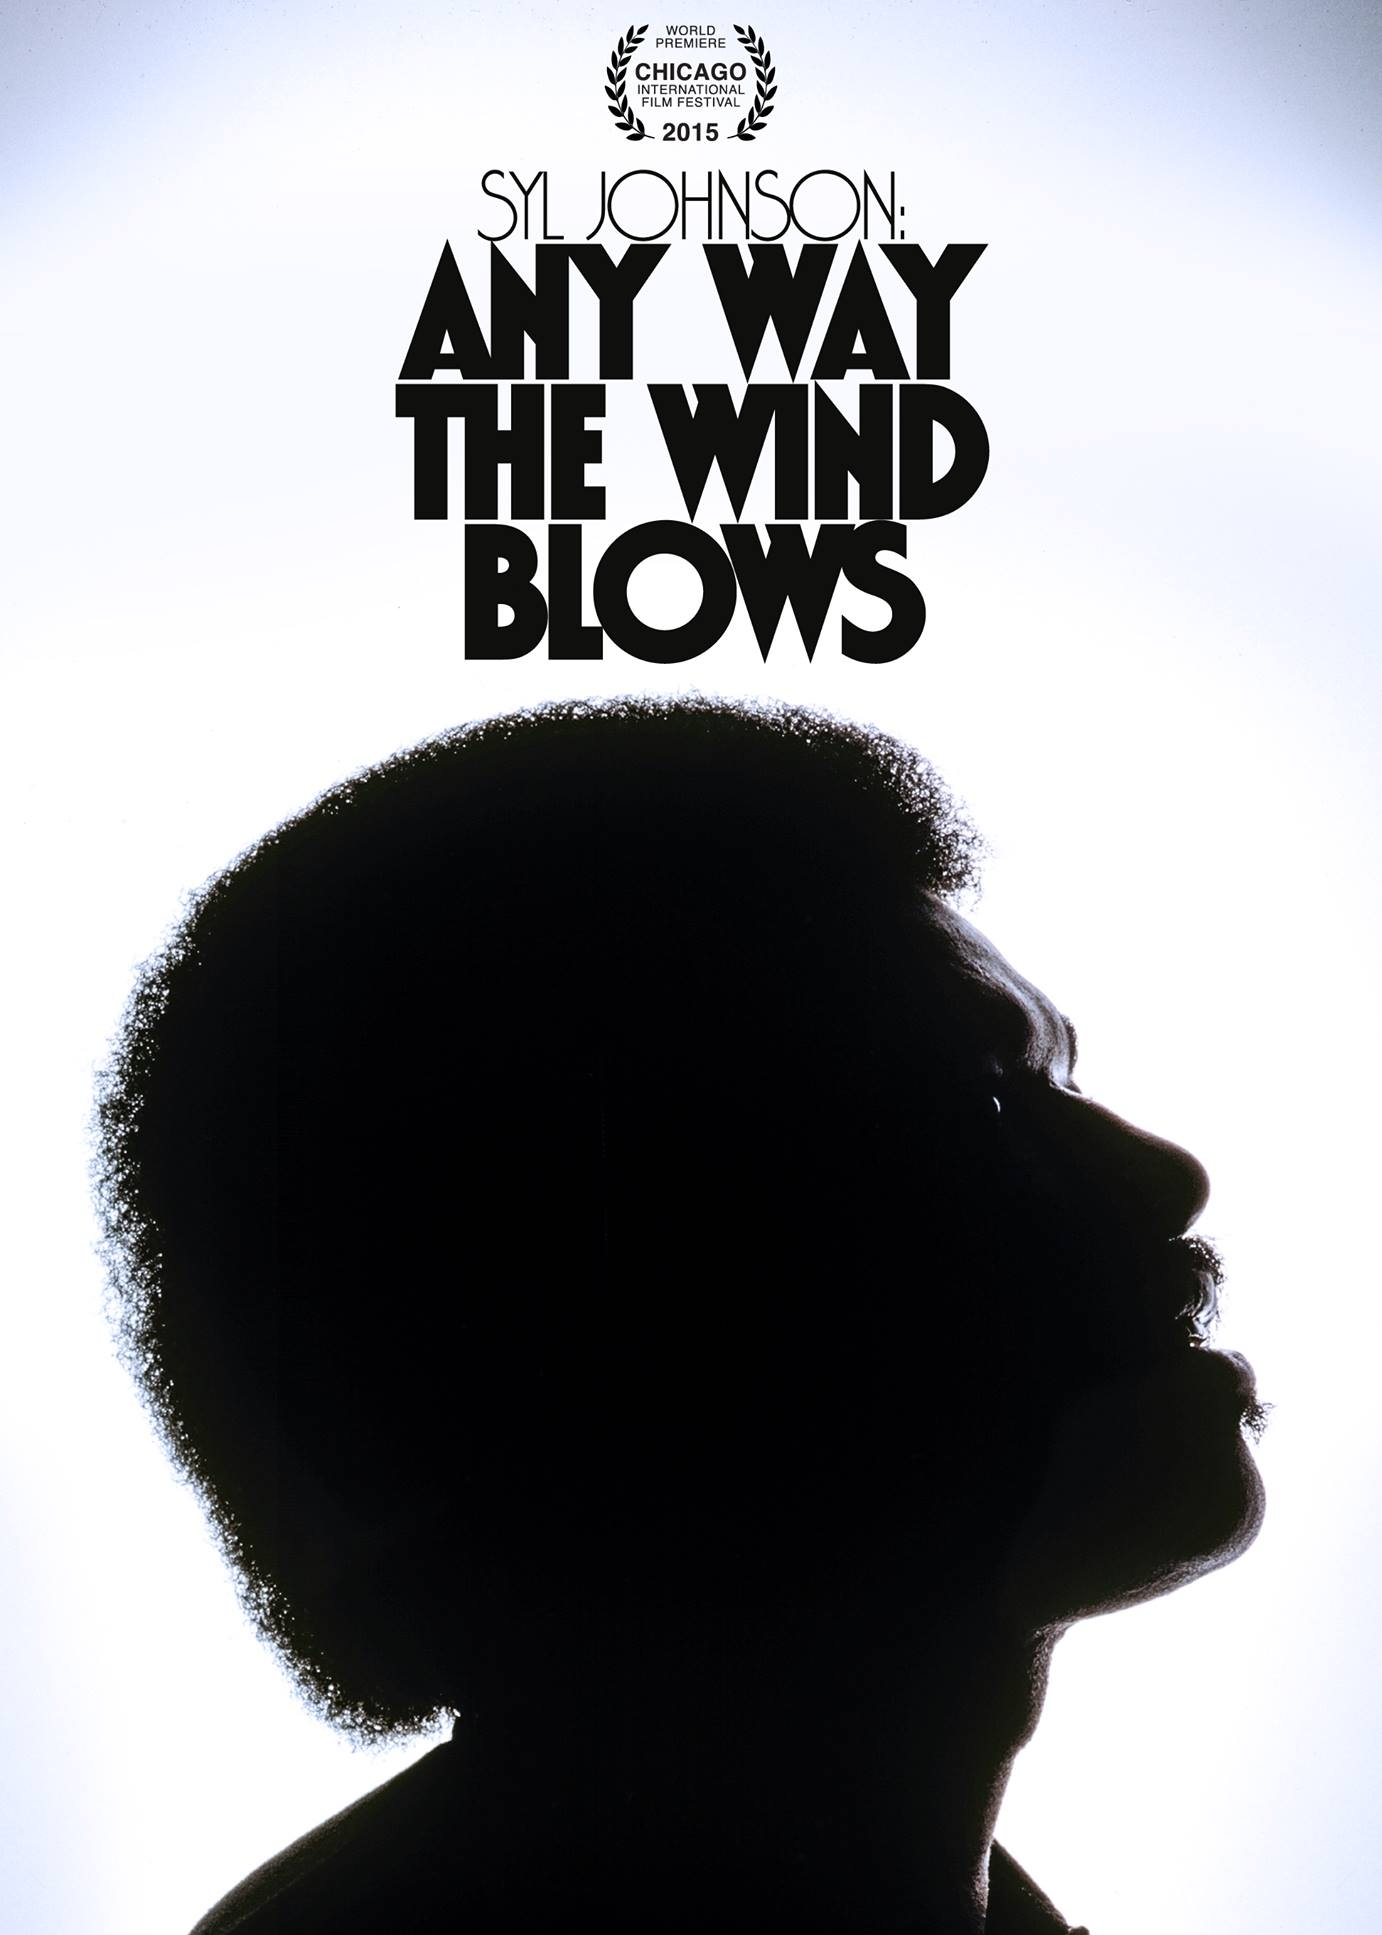 Syl Johnson: Any Way the Wind Blows - 2015, USA, 84 min, in EnglishSyl Johnson: Any Way The Wind Blows is a portrait of an overlooked yet hugely influential African-American musician whose 60 year career spanned every genre of Black music from the Blues, to Soul, to Funk, to Hip Hop.